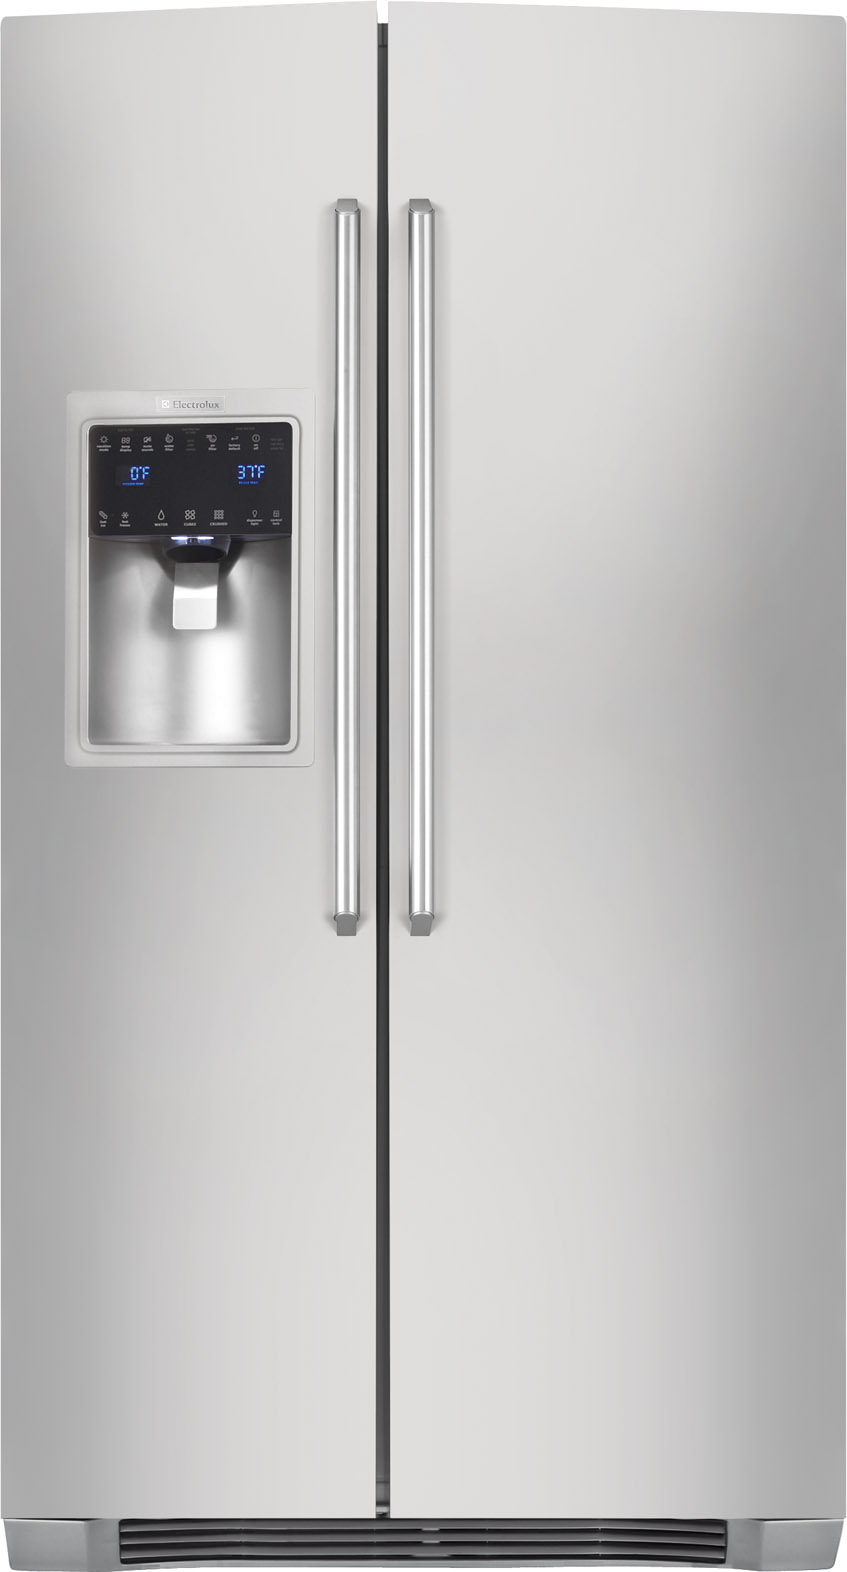 Electrolux 23 Cu. Ft. Counter Depth Side By Side Refrigerator Stainless. Electrolux  Kitchen